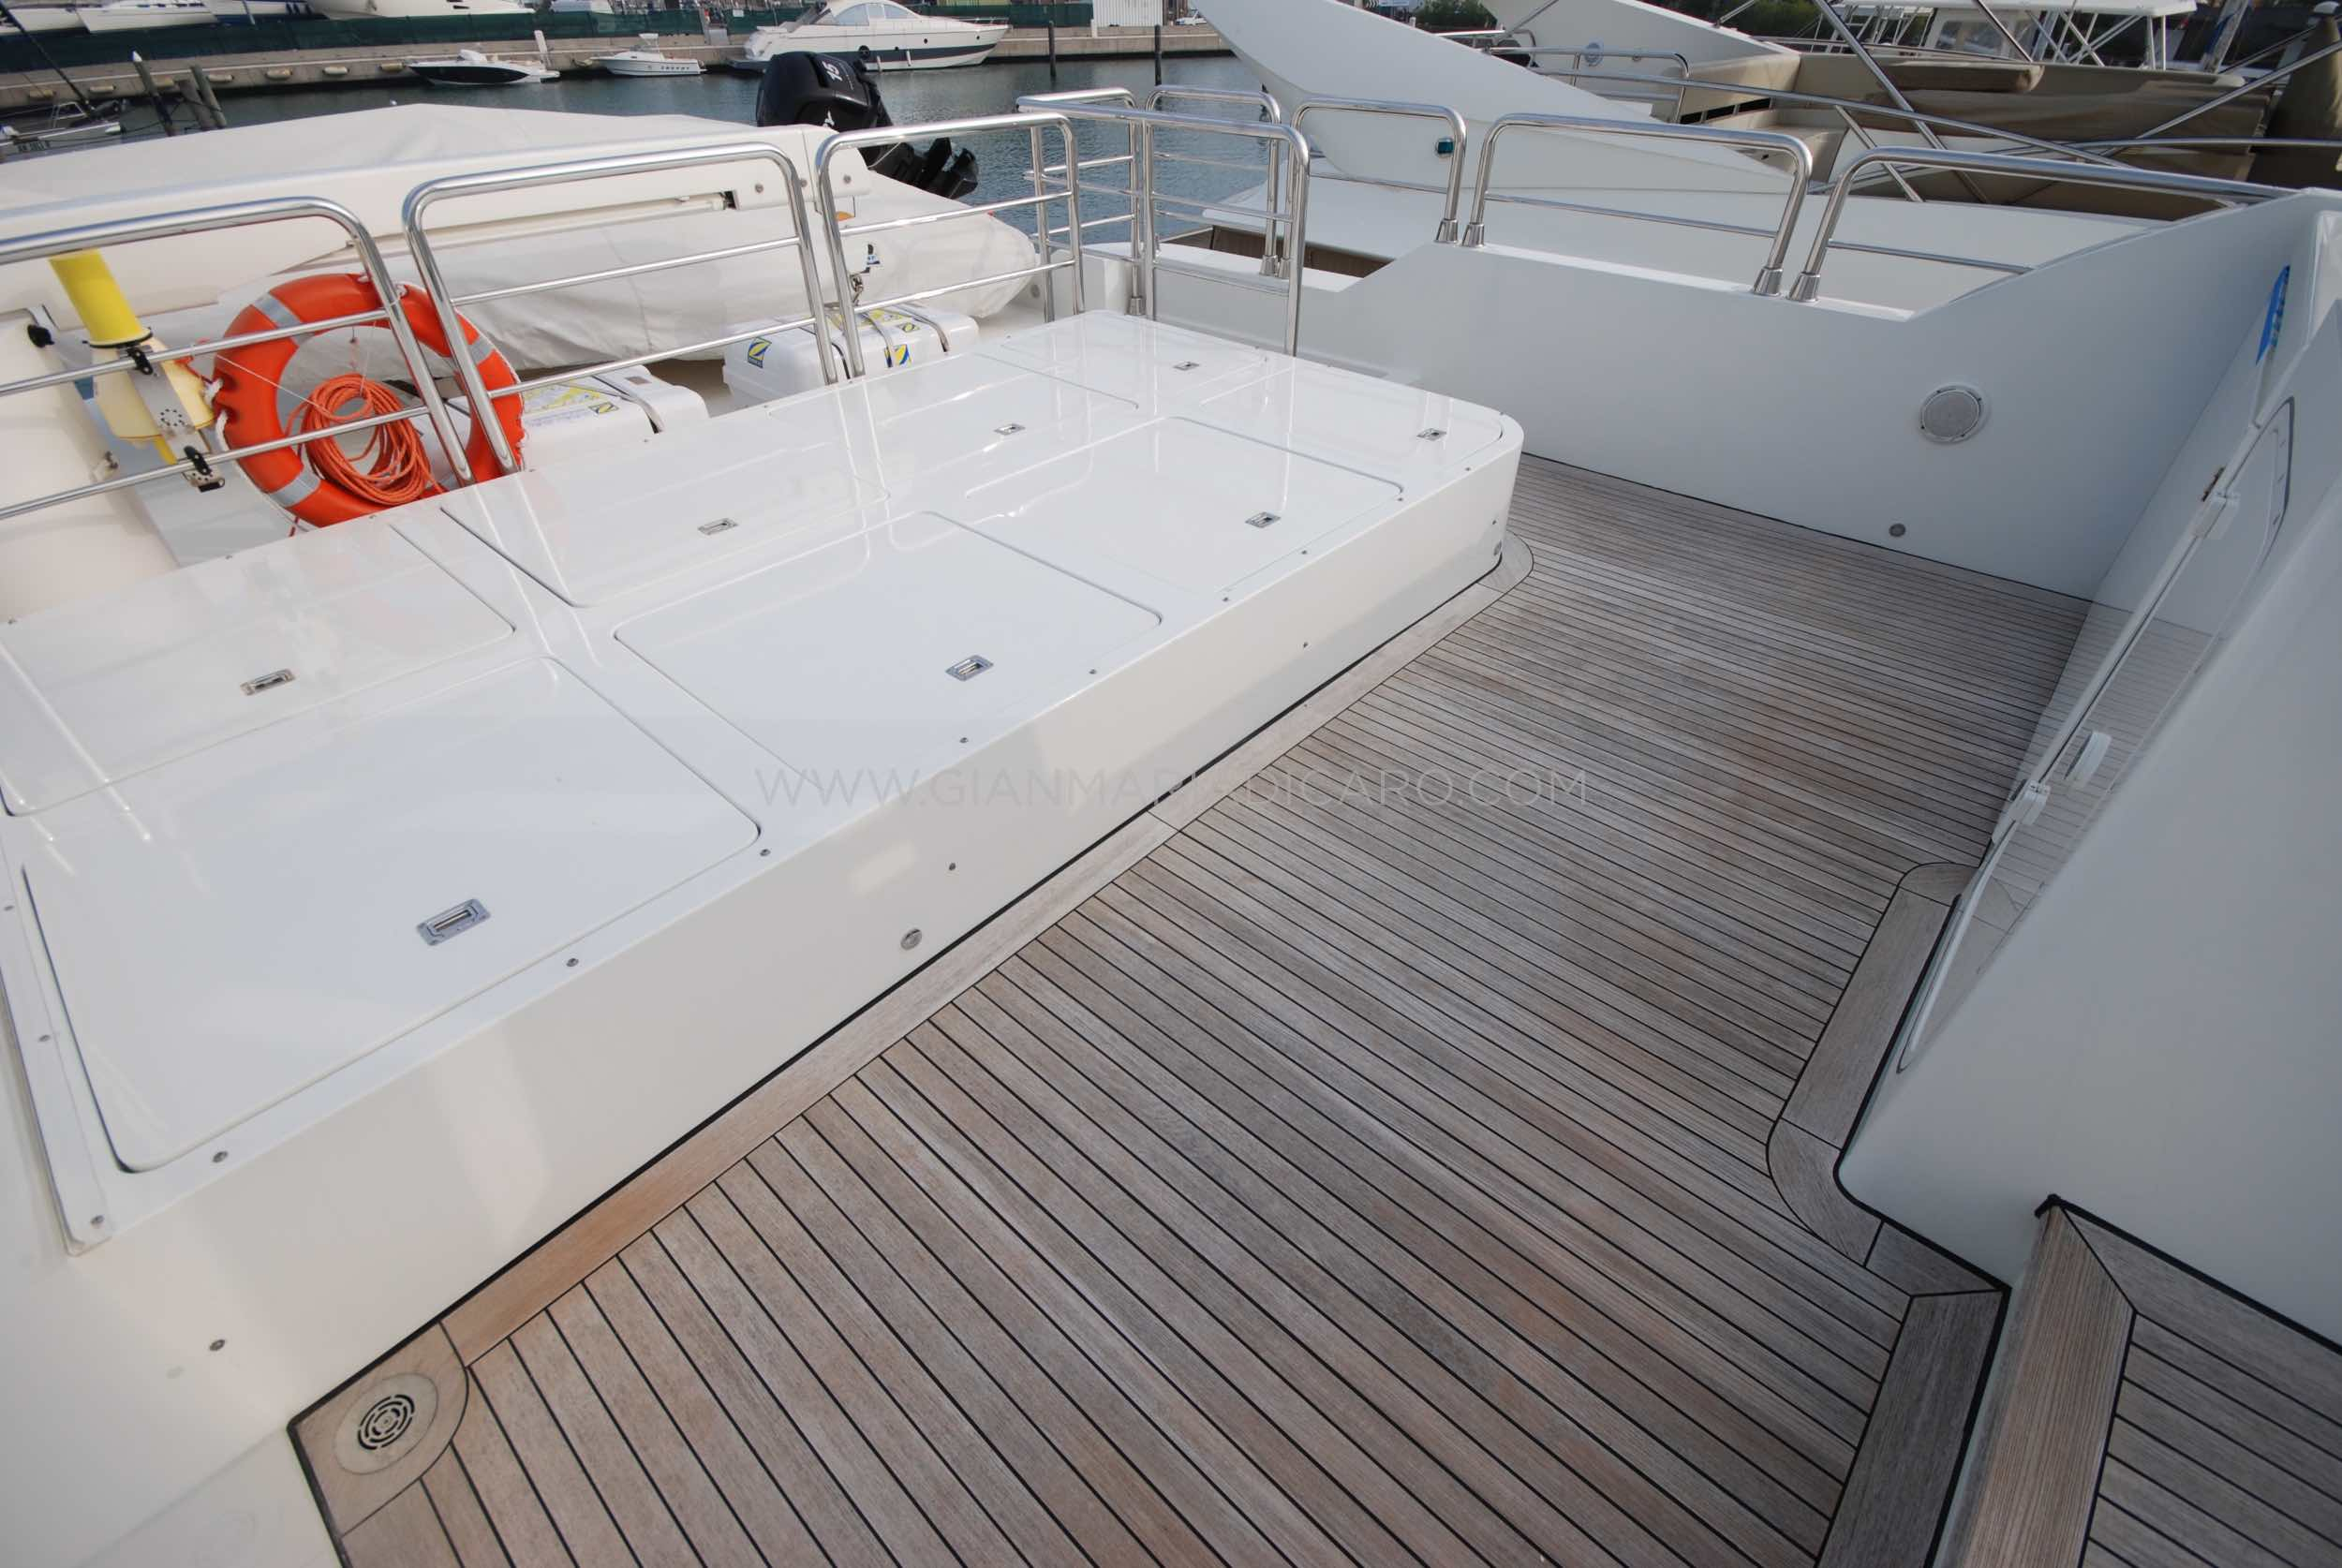 emys-yacht-22-unica-for-sale-110.jpg